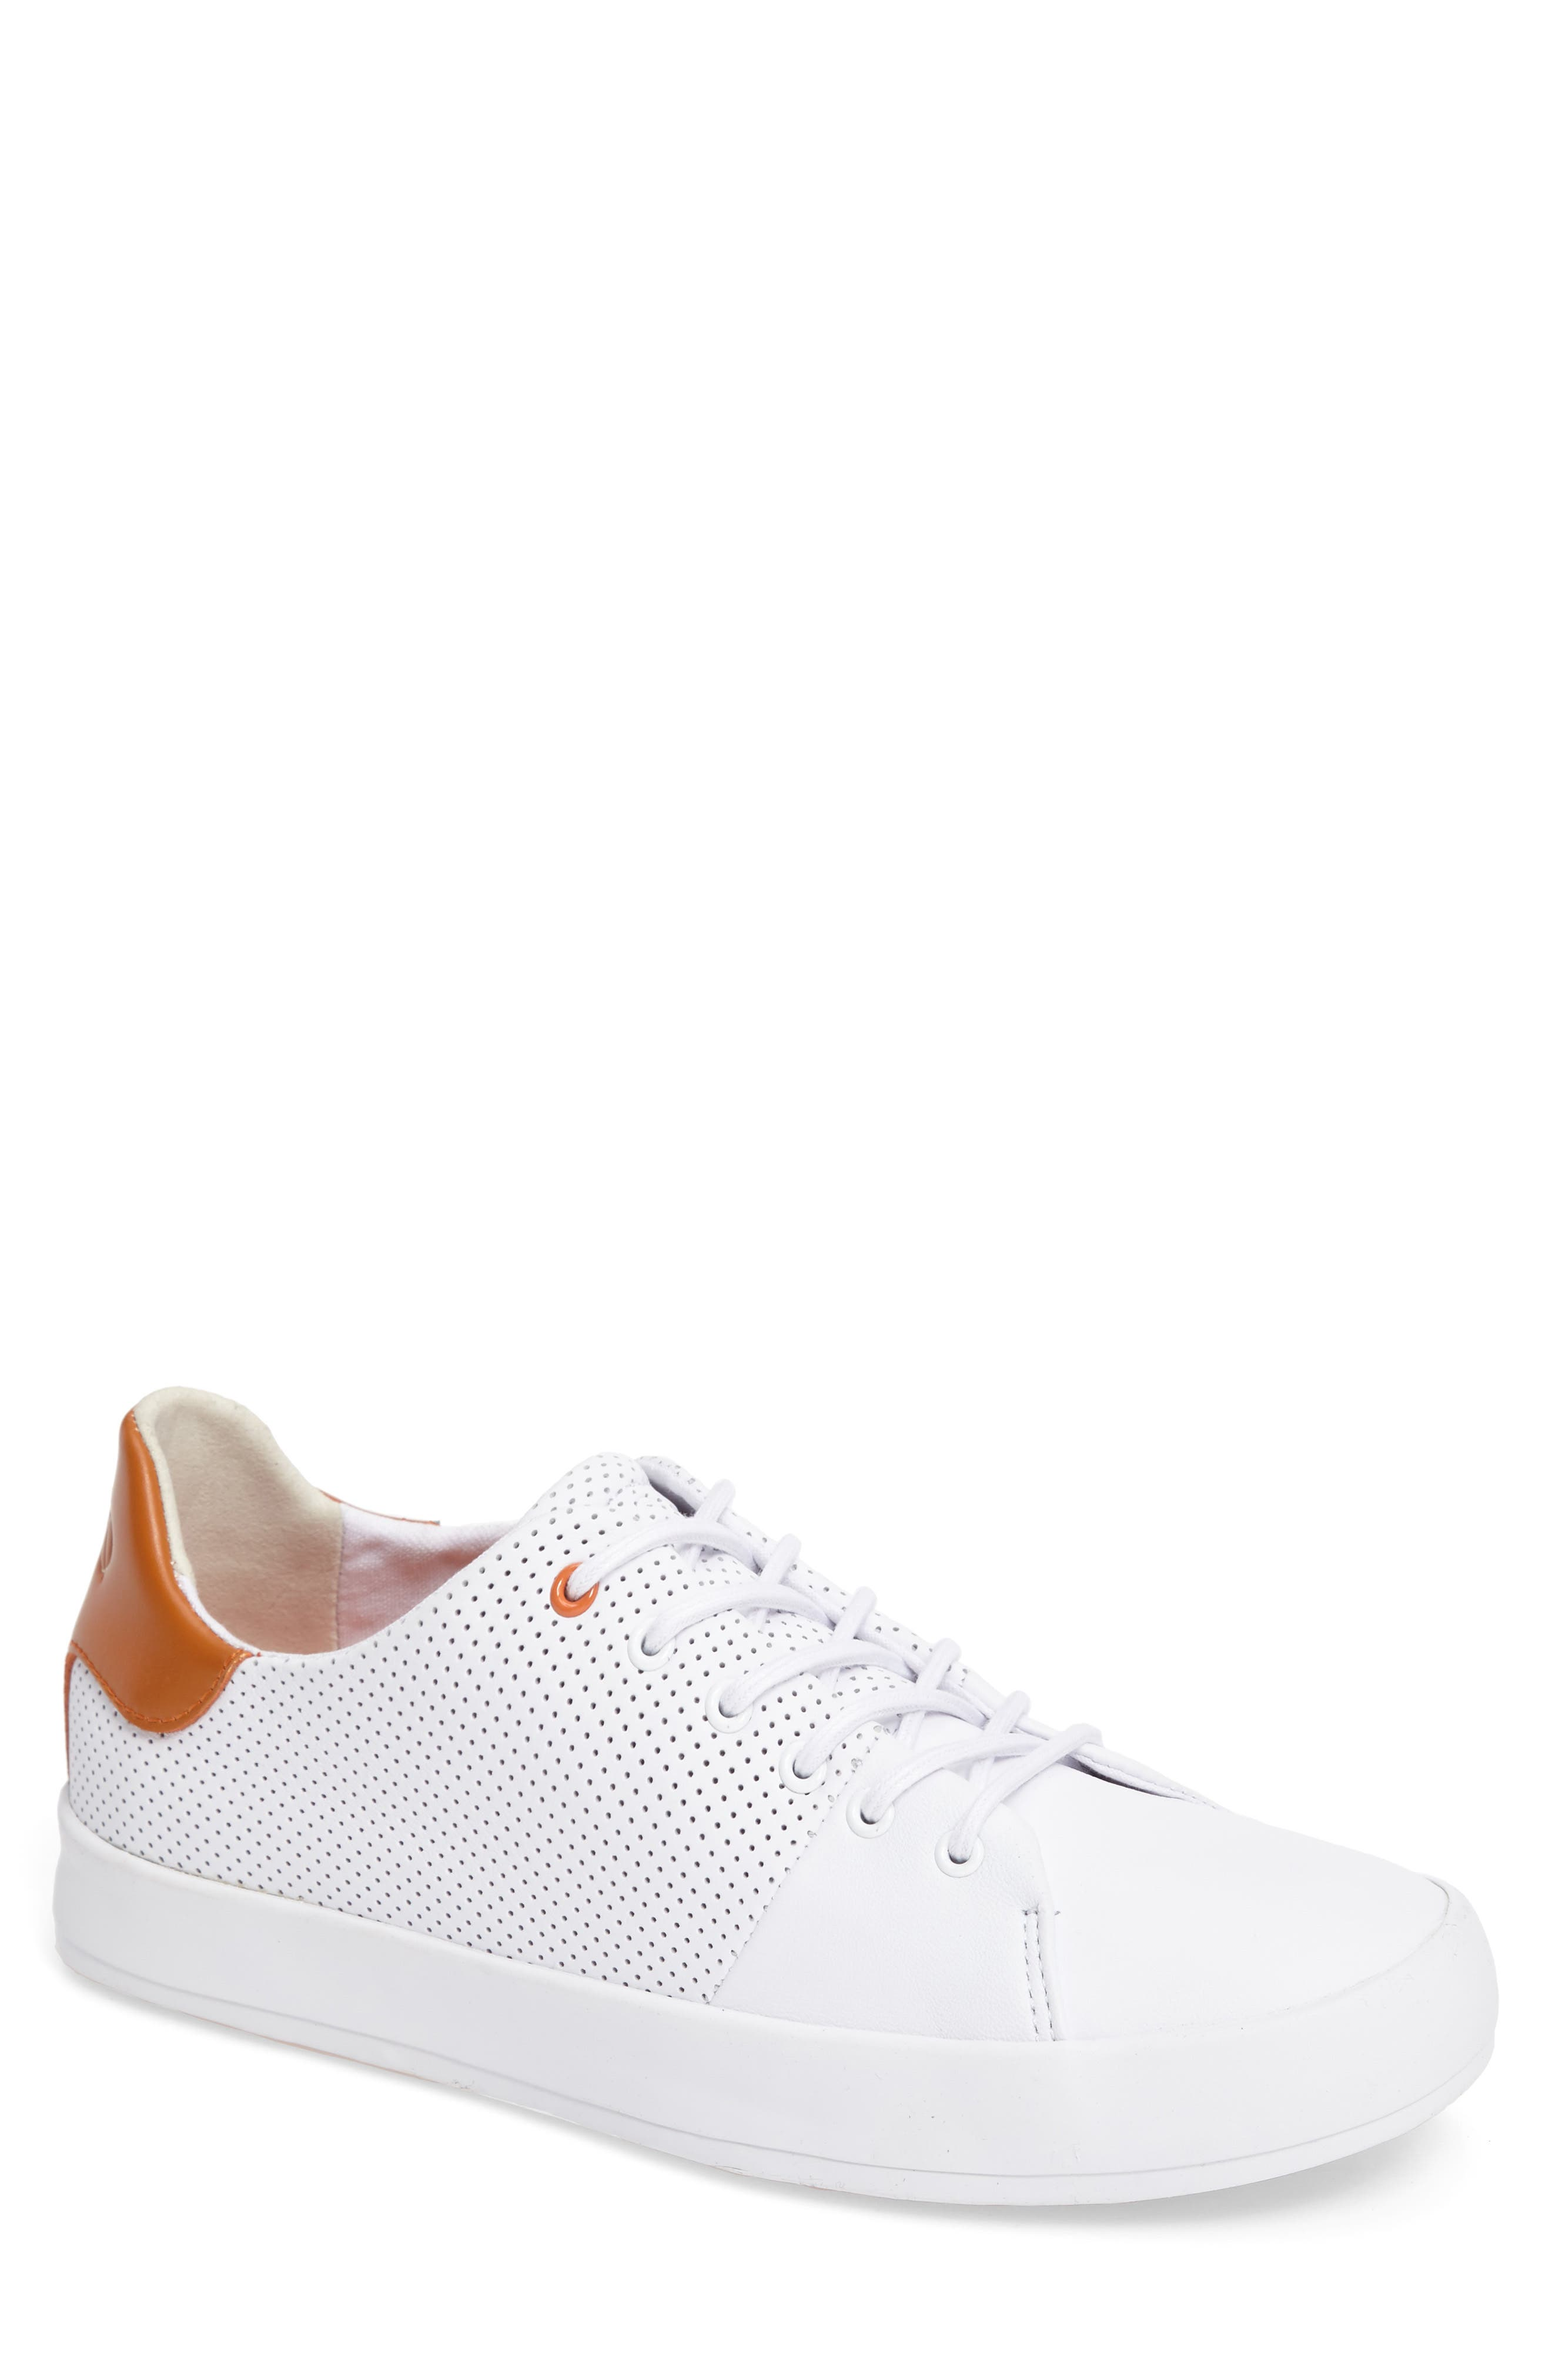 Nick Jonas x Creative Recreation Carda Perforated Sneaker (Men)